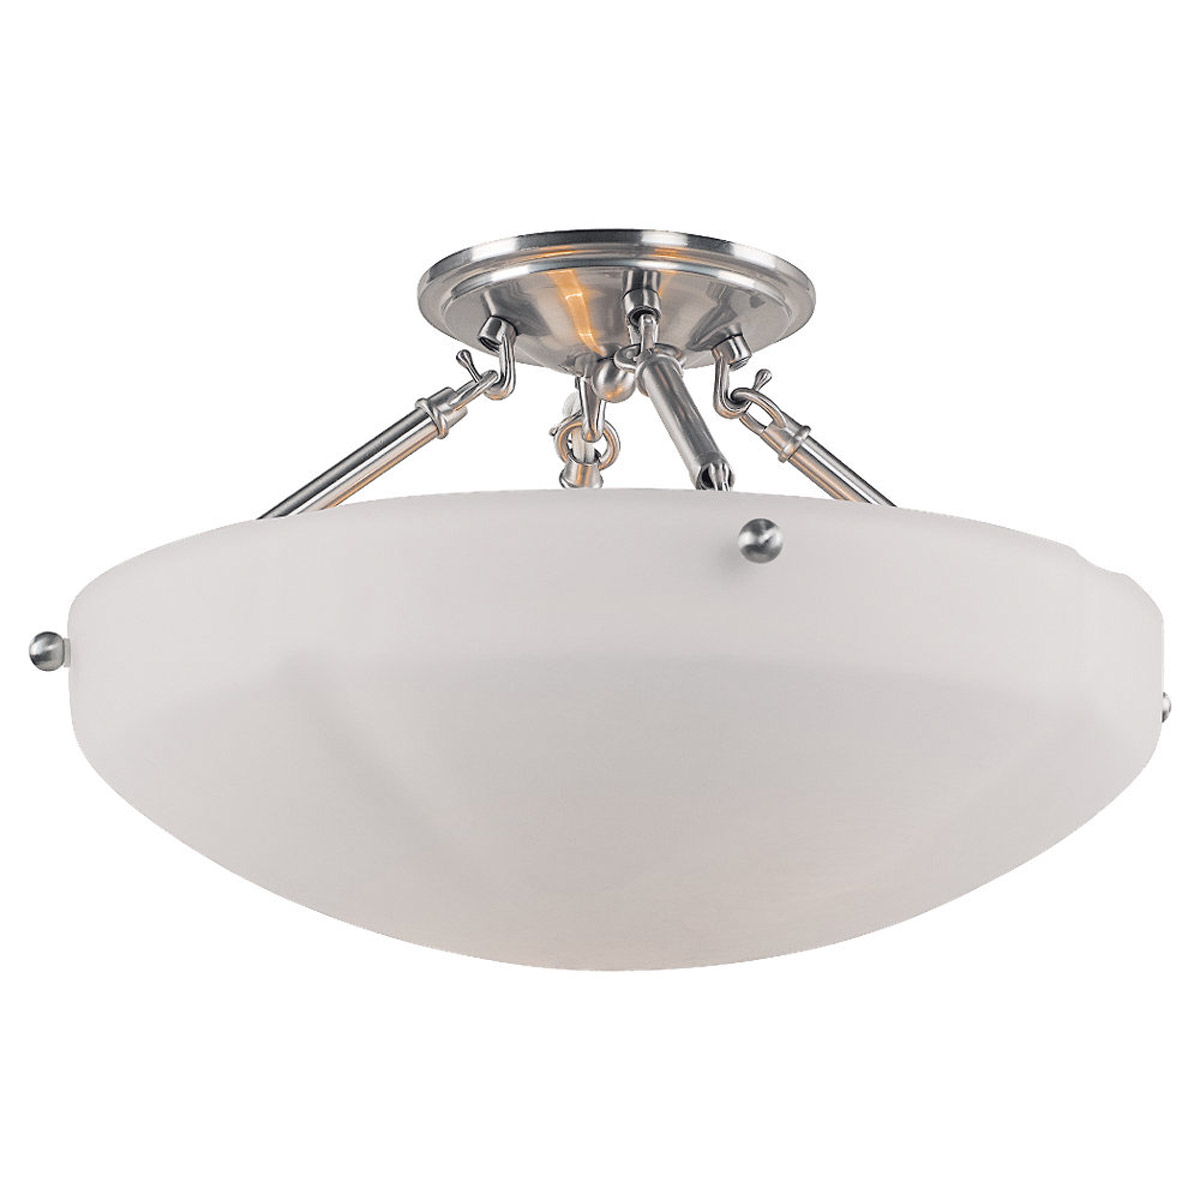 Sea Gull Lighting Century 2 Light Flush Mount in Brushed Nickel 77474-962